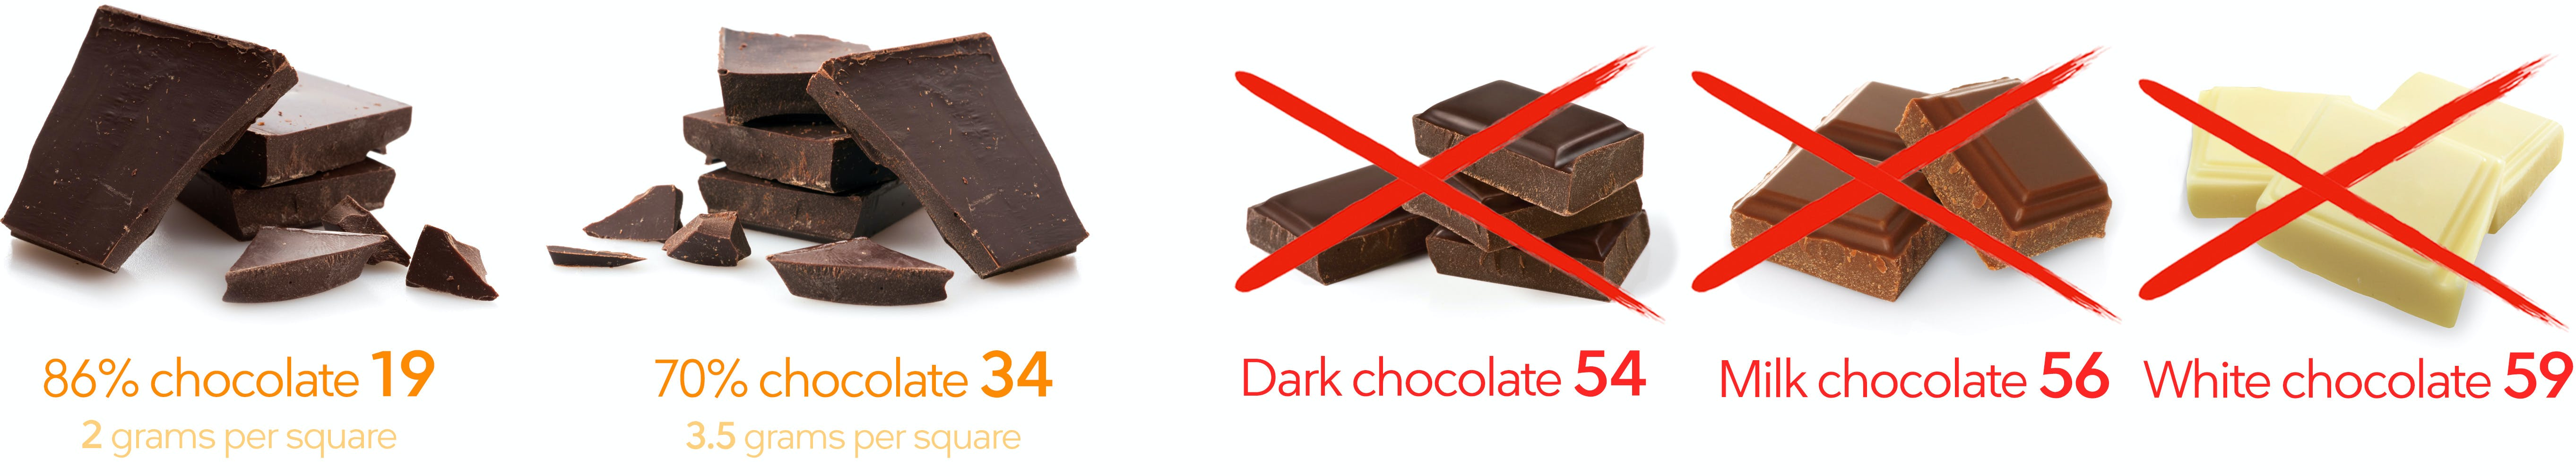 chocolate with 70% cocoa or more